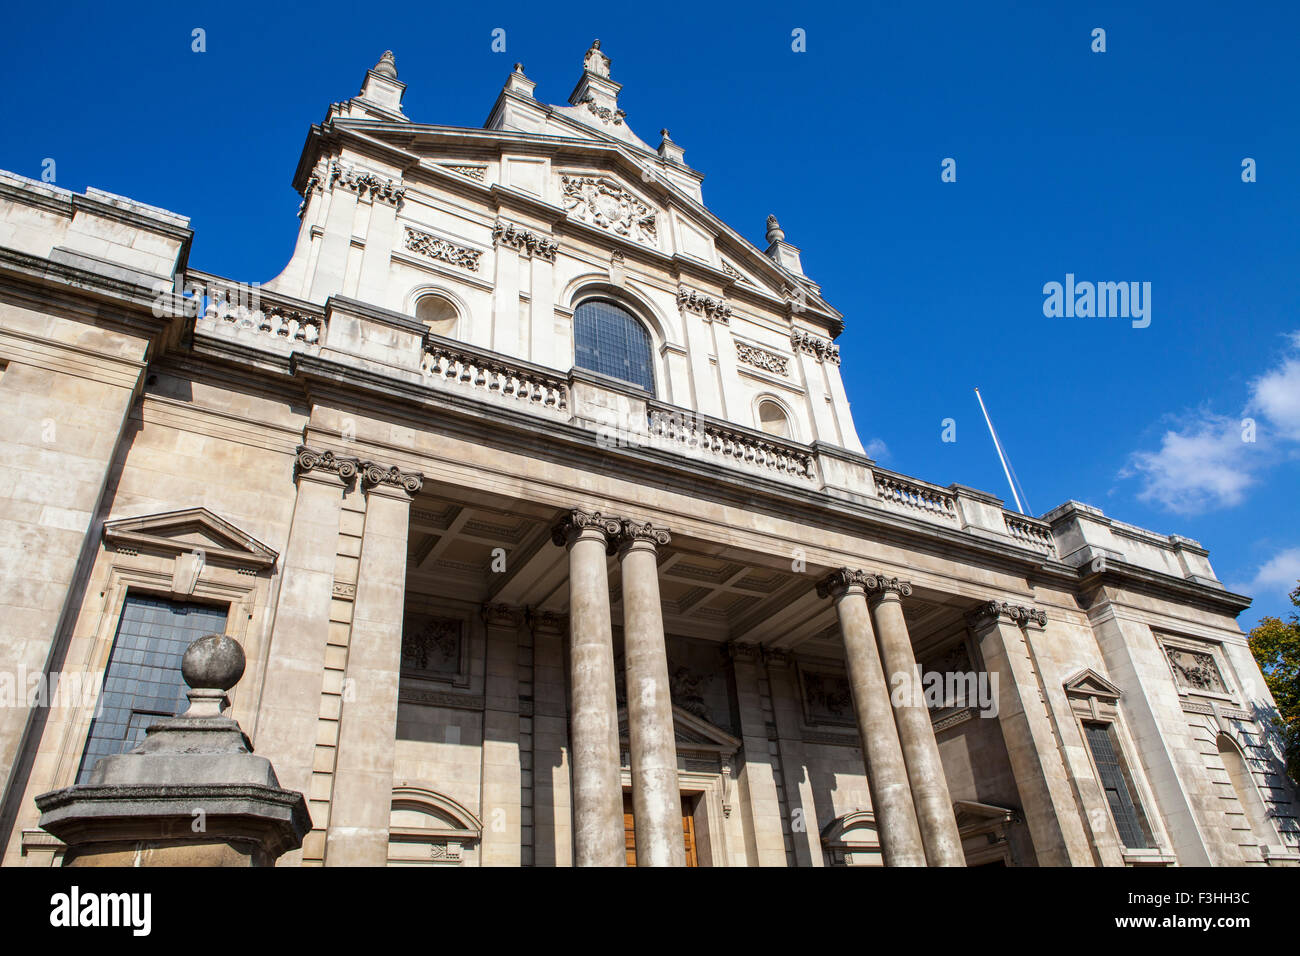 The impressive facade of the historical Brompton Oratory in London. - Stock Image